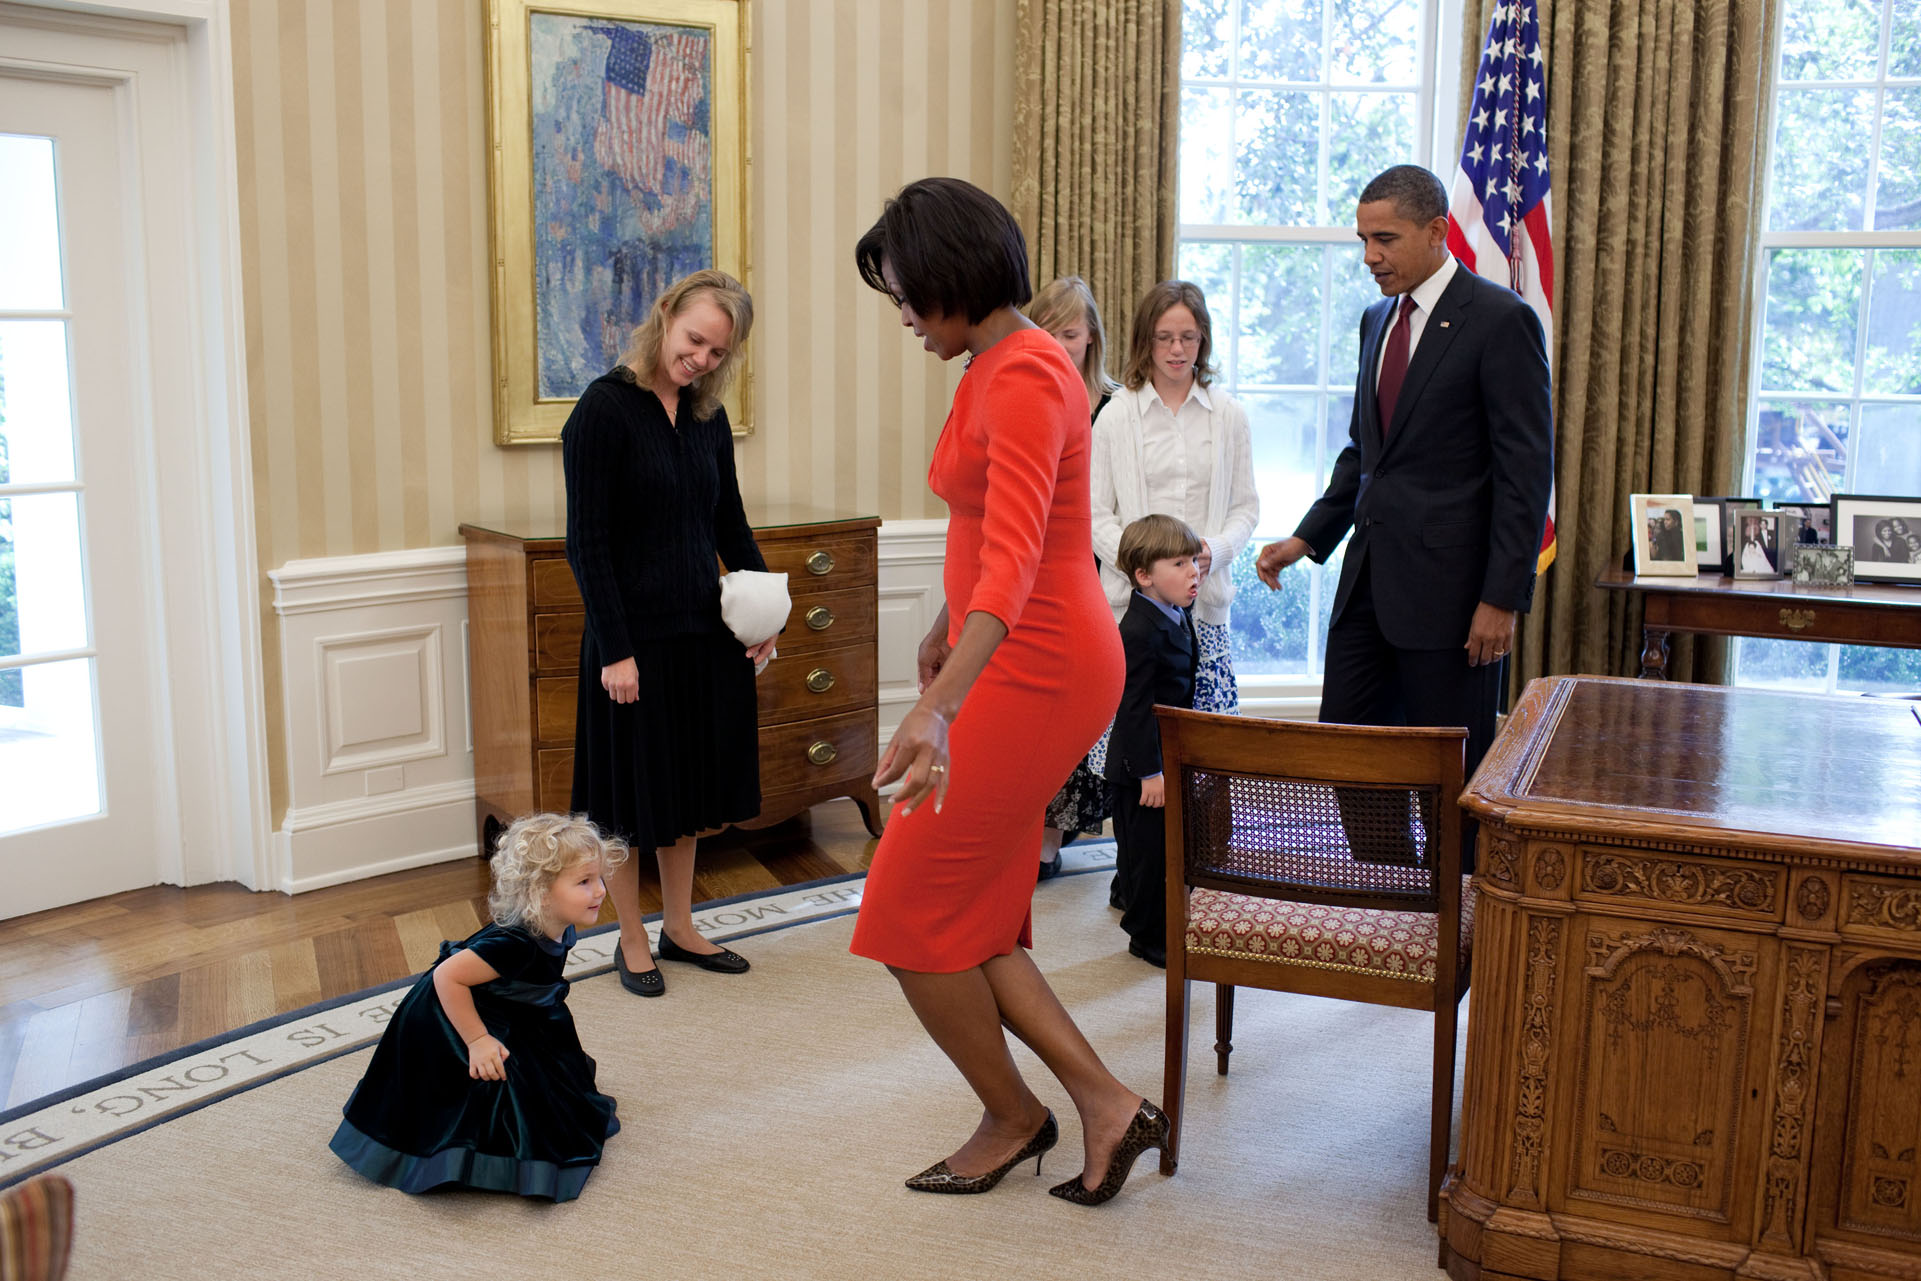 The First Lady Greets a Young Visitor in the Oval Office